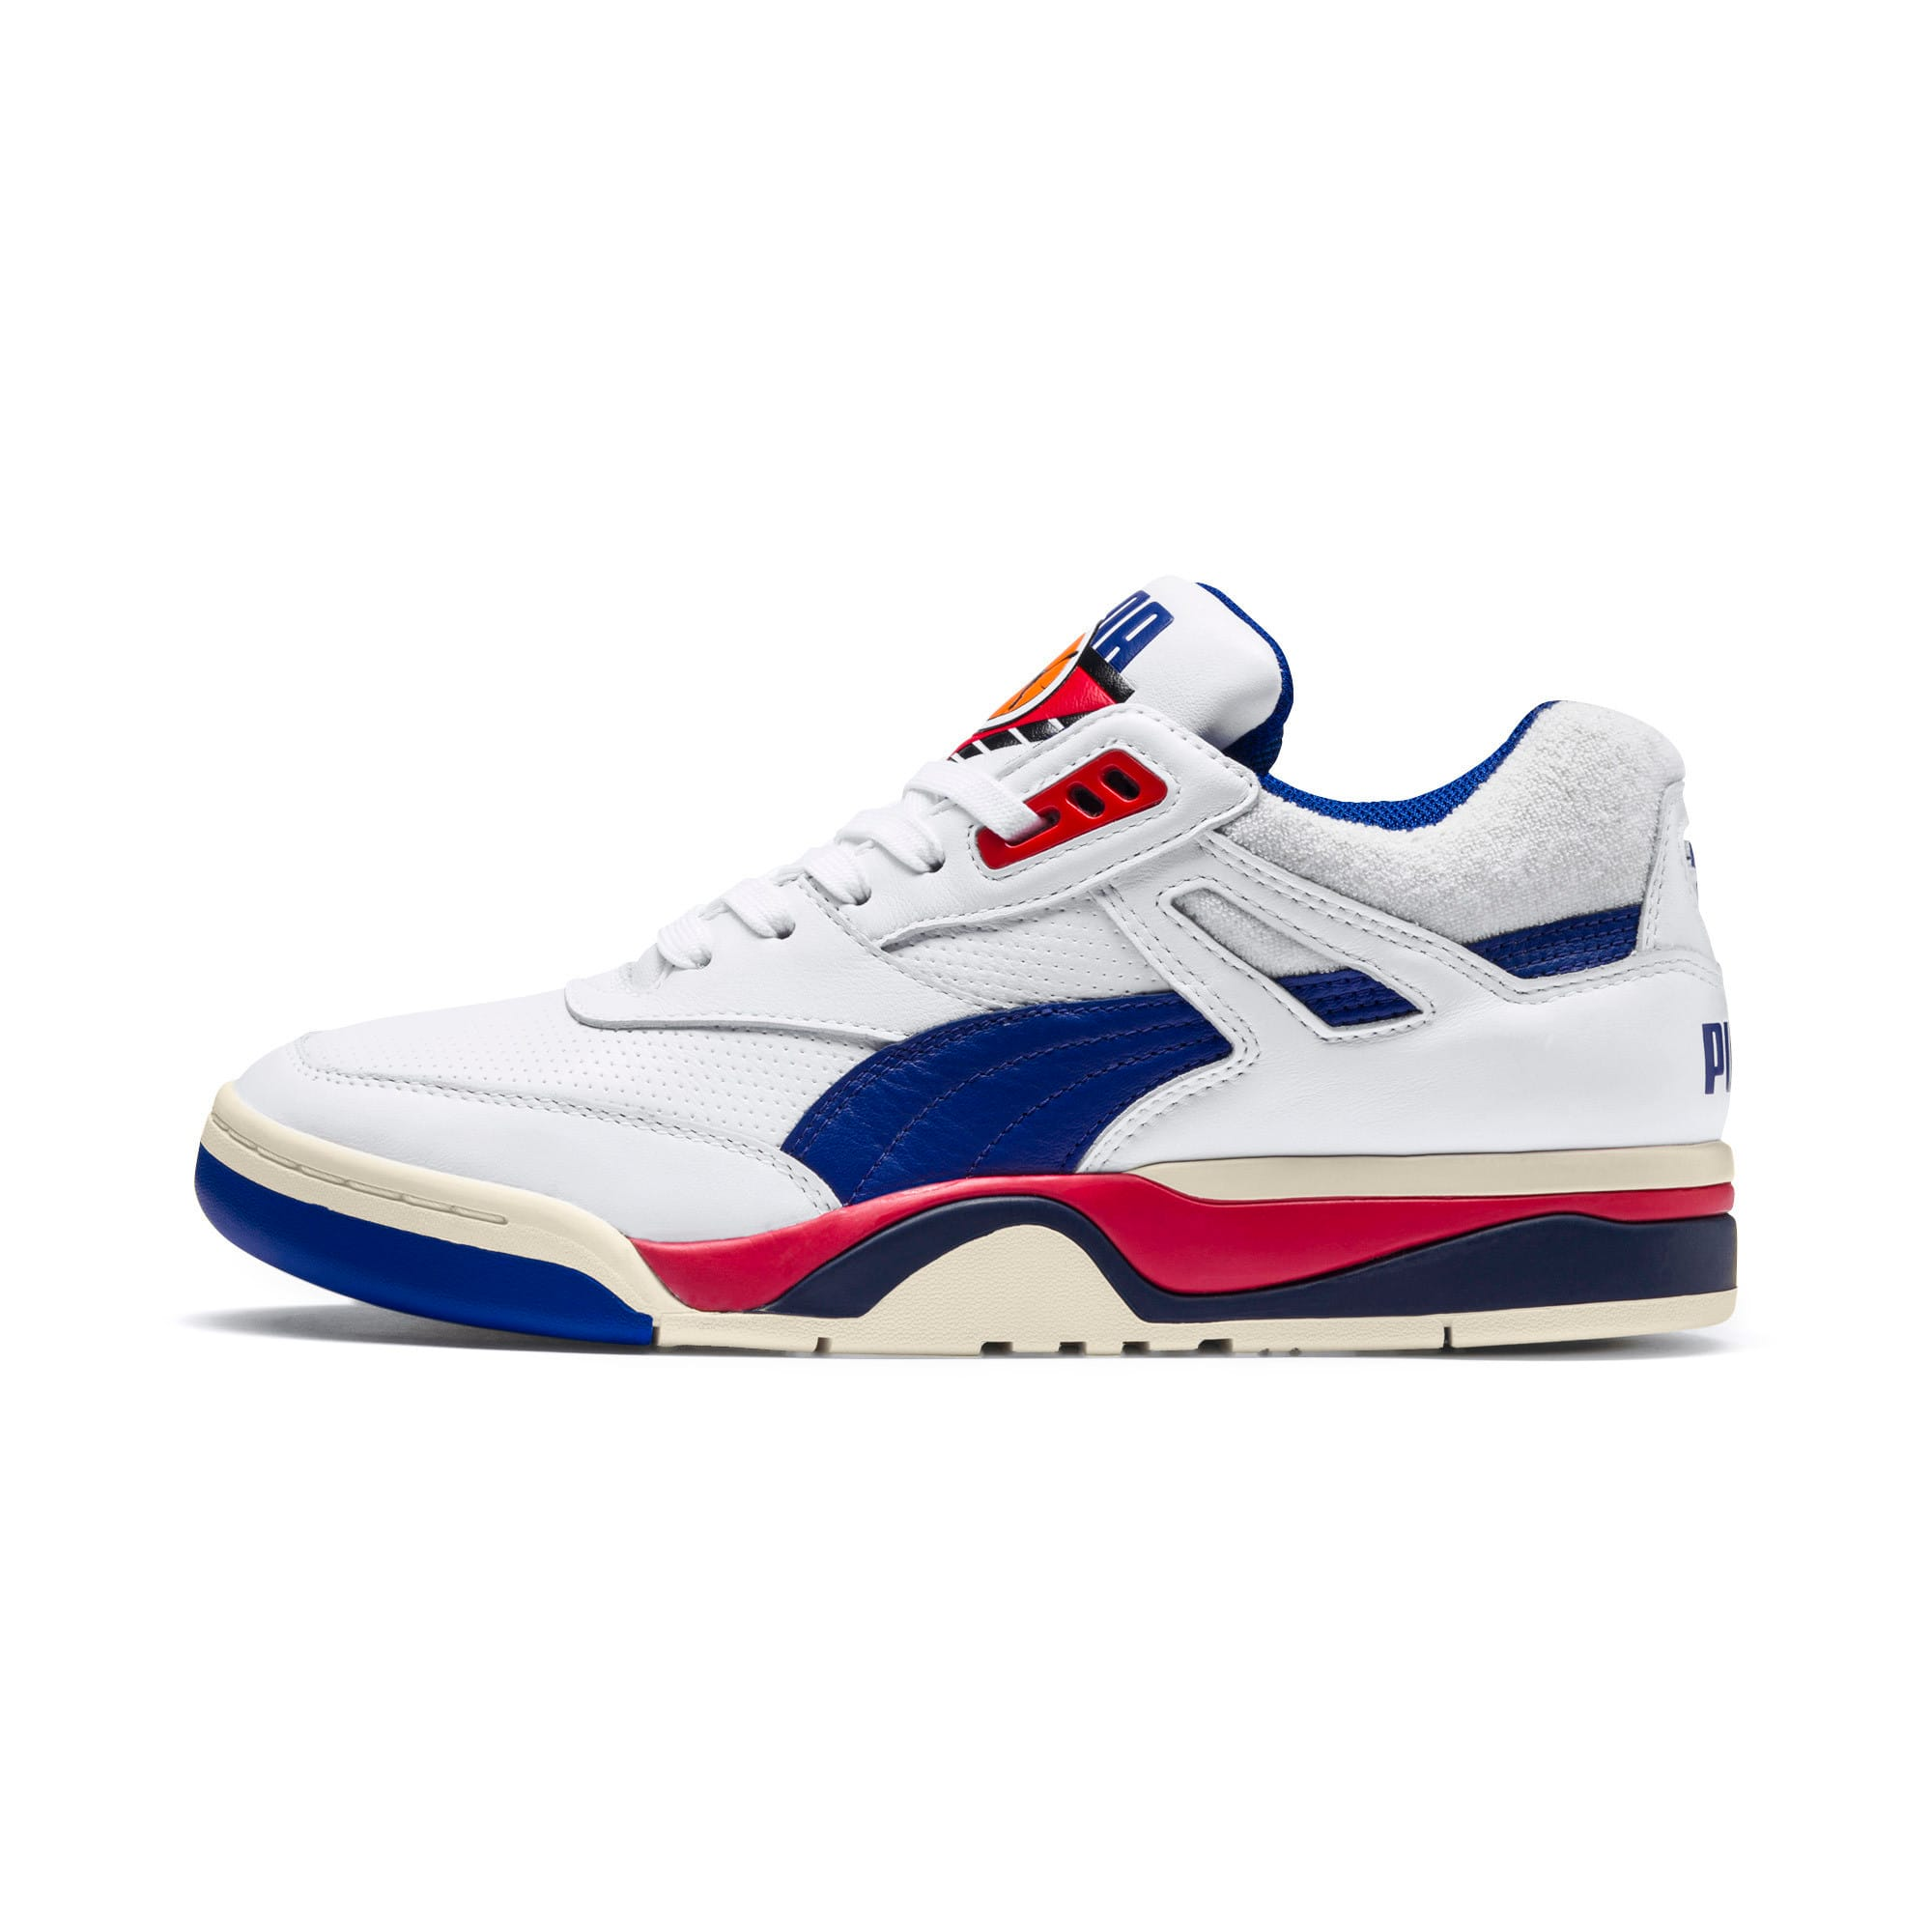 Thumbnail 1 of Palace Guard OG Sneakers, Puma White-Surf The Web-Red, medium